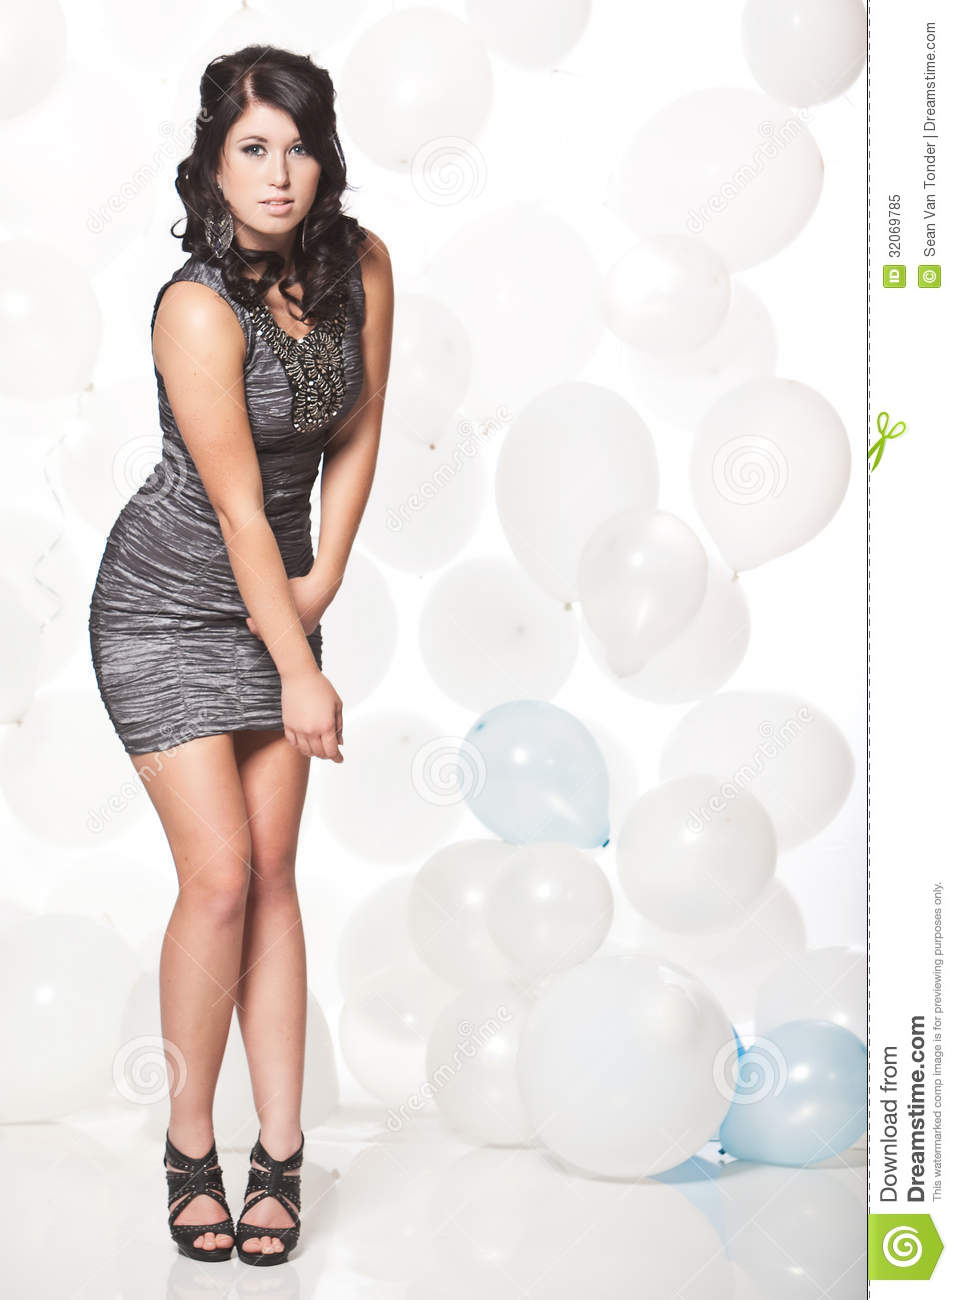 Female Fashion Model Posing With A Balloon Background ...